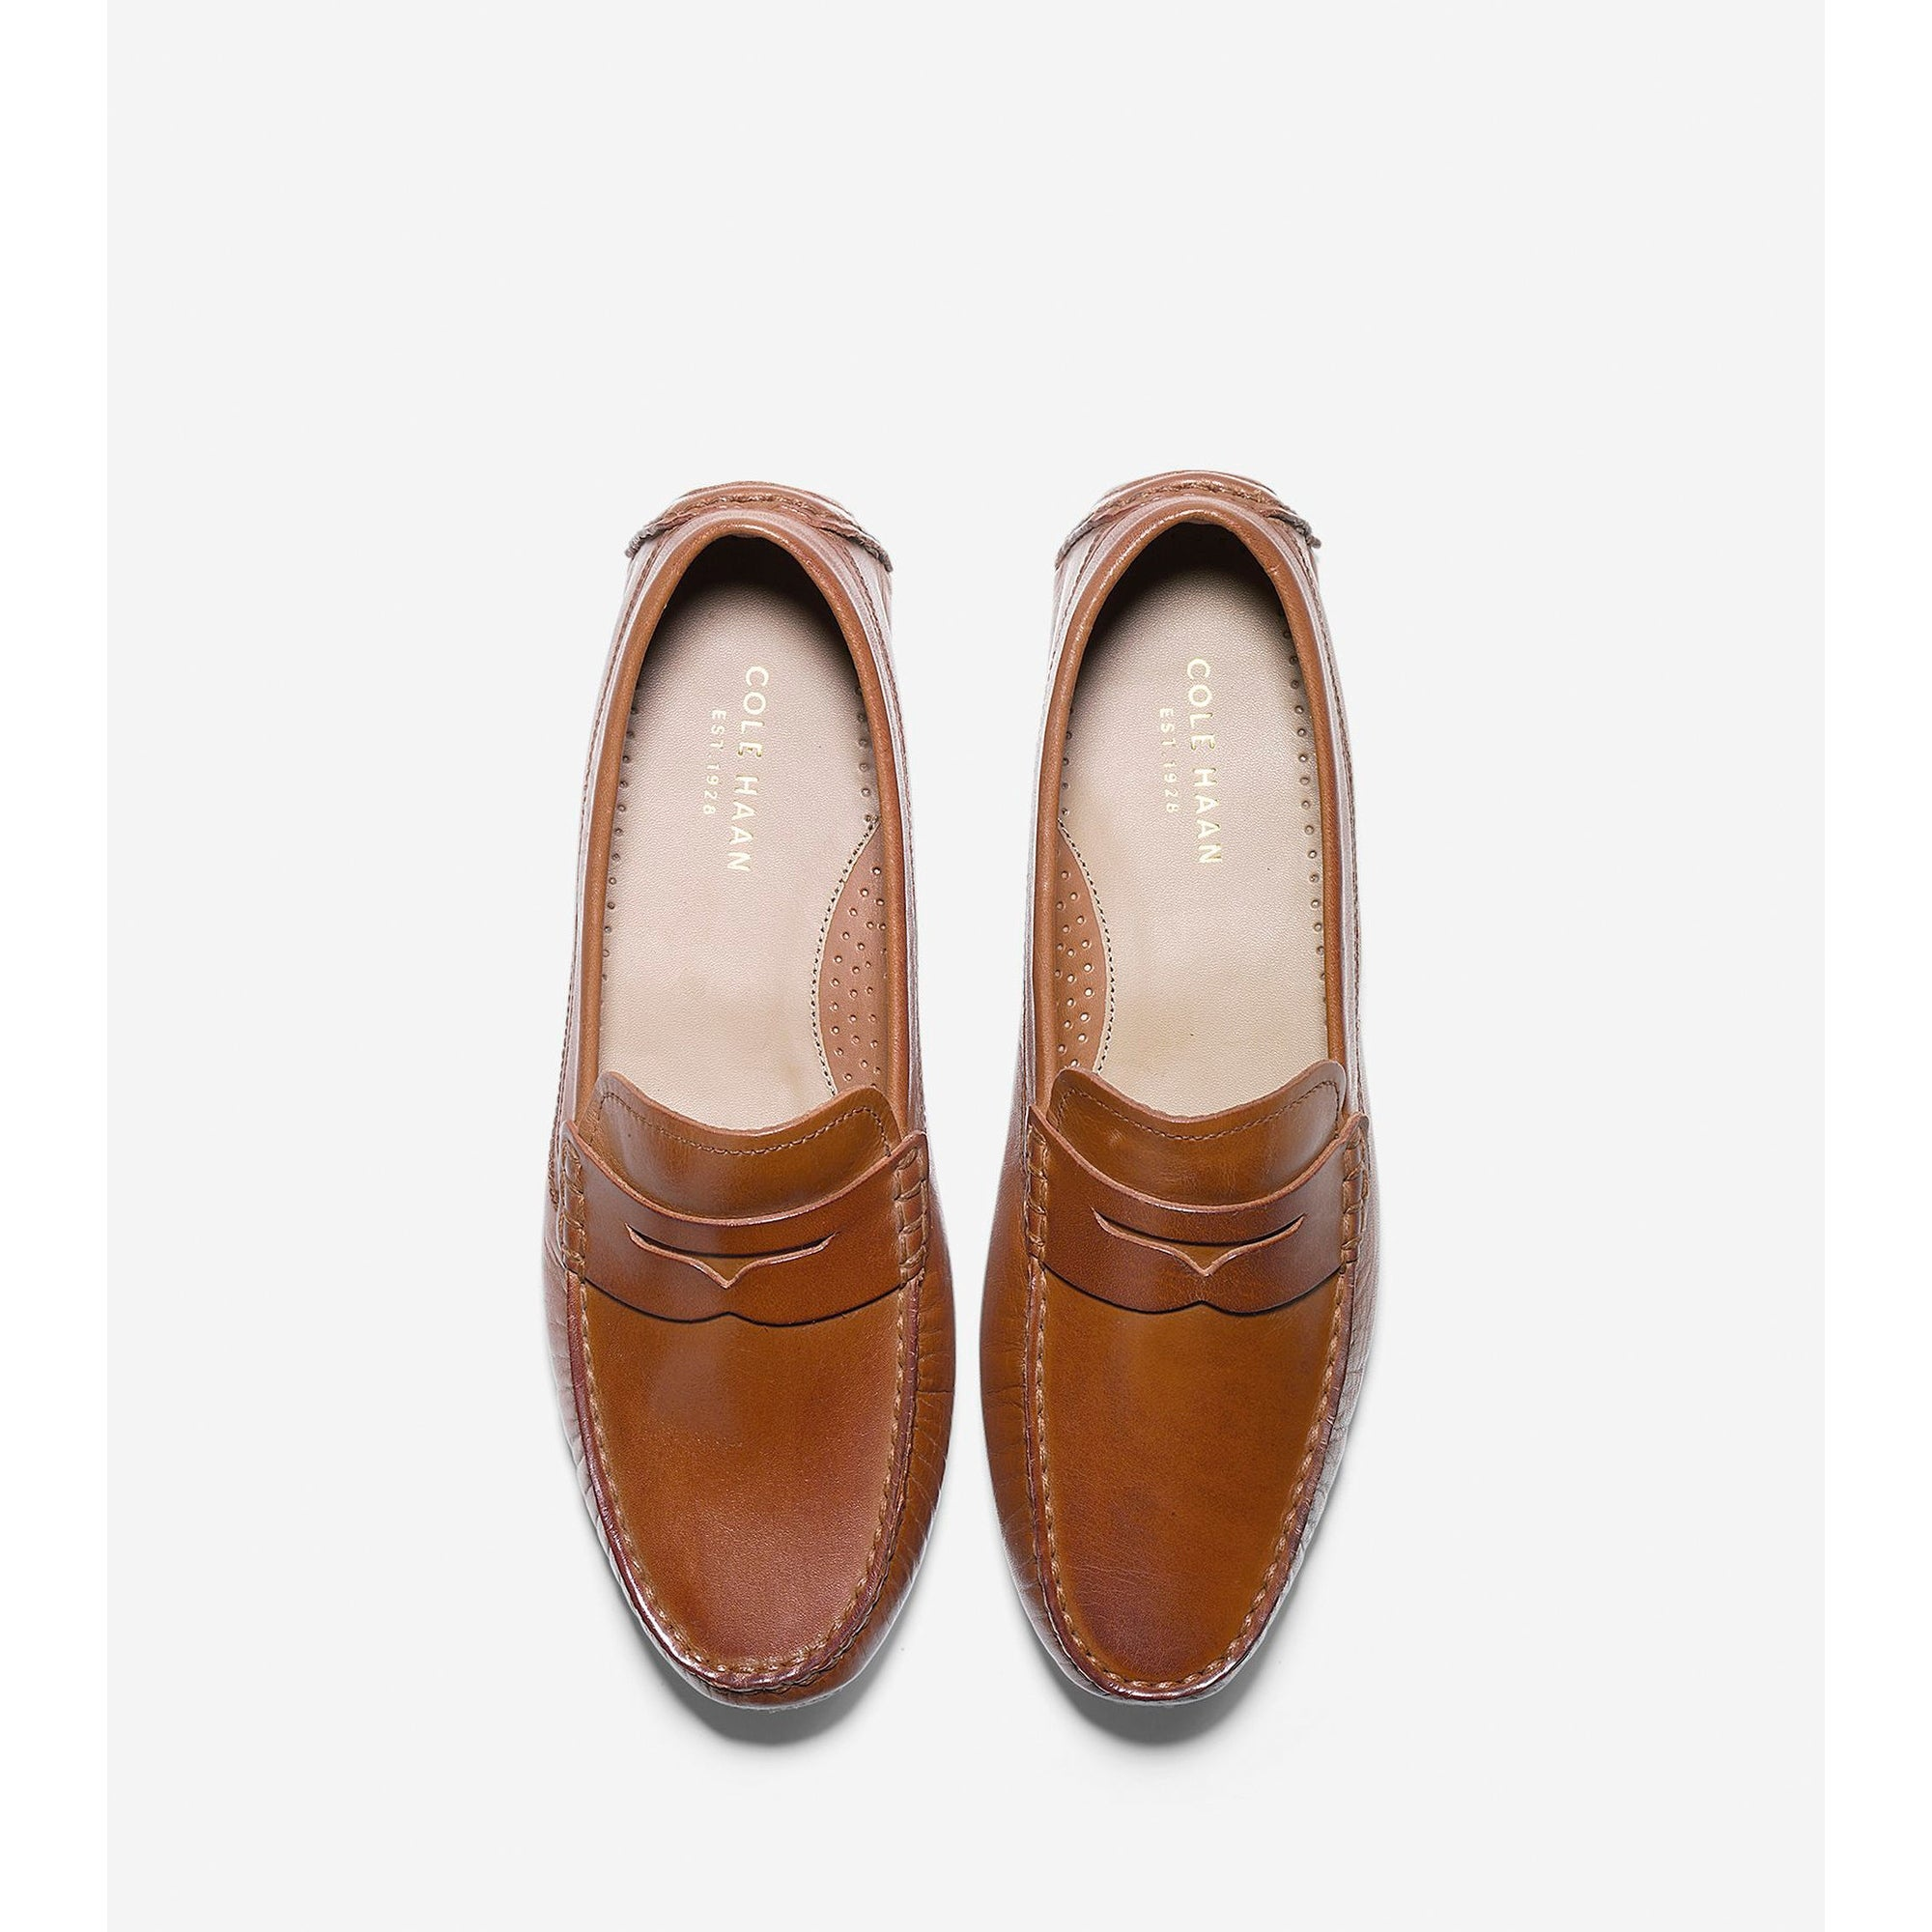 2ab3557029f Shop Cole Haan Womens Rodeo Penny Driver Leather Closed Toe Loafers - Free  Shipping Today - Overstock.com - 22117355